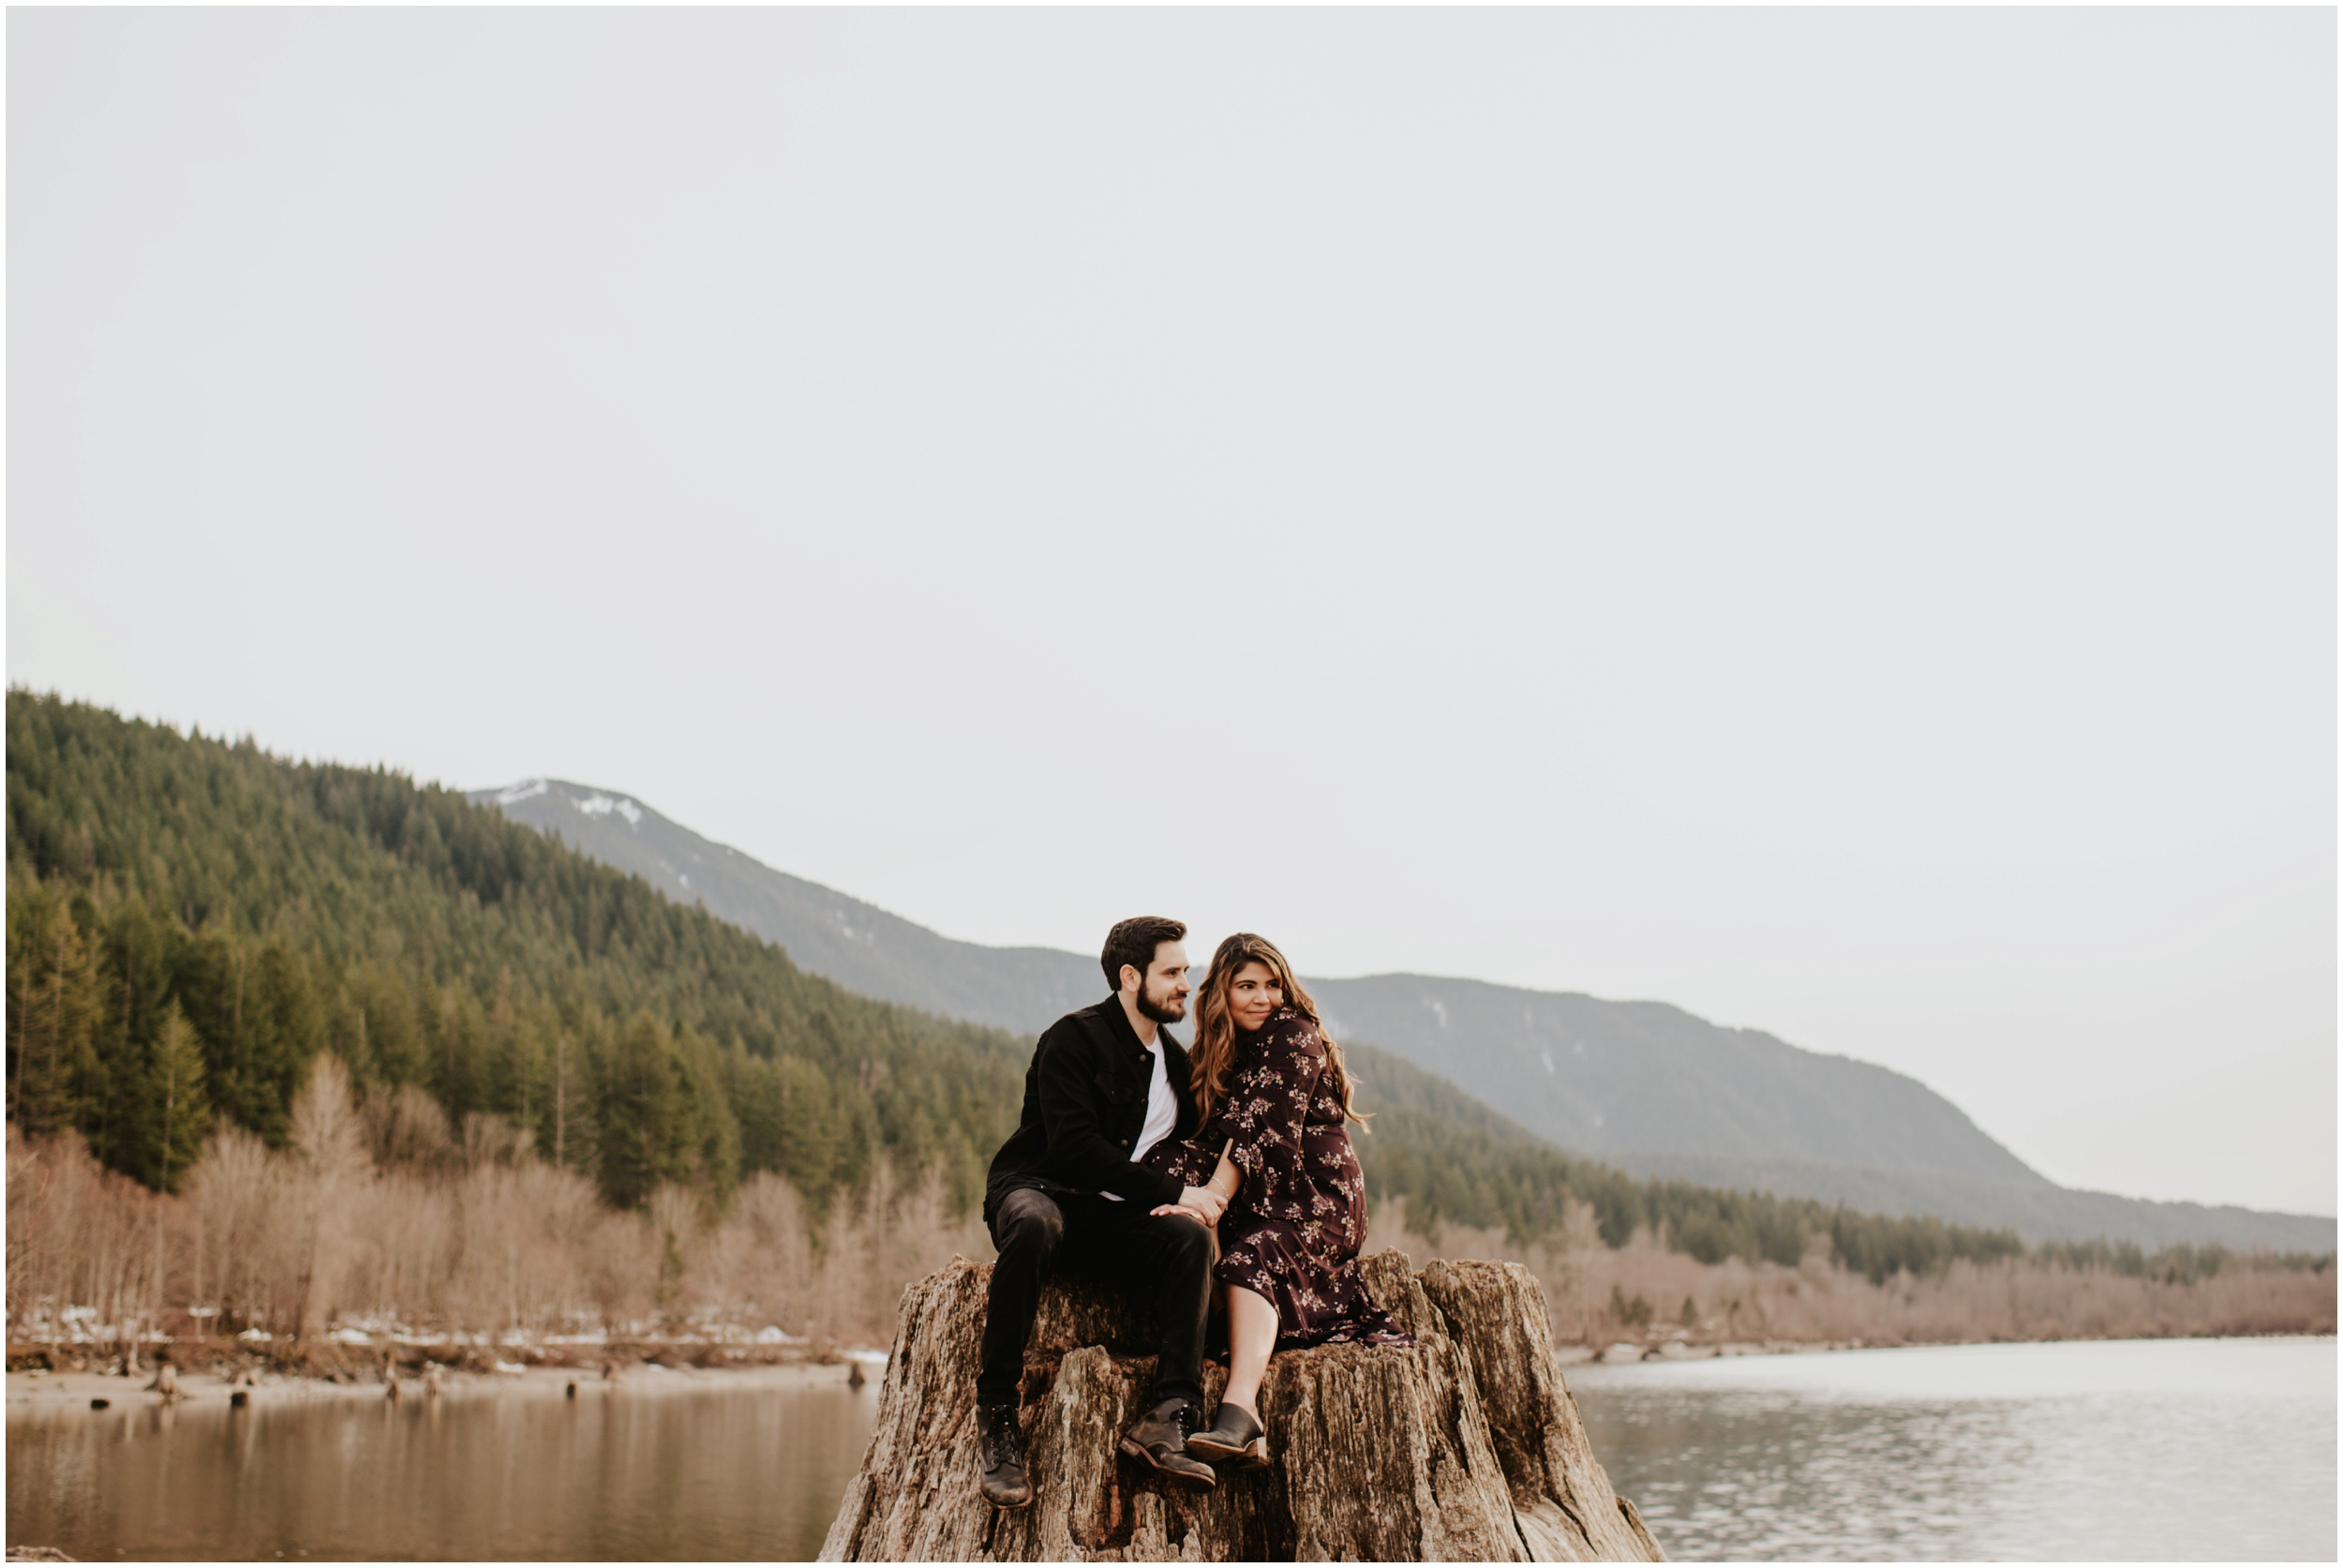 Couple on tree trunk at Rattlesnake Lake, WA | Seattle Wedding Photographer www.riversandroadsphotography.com